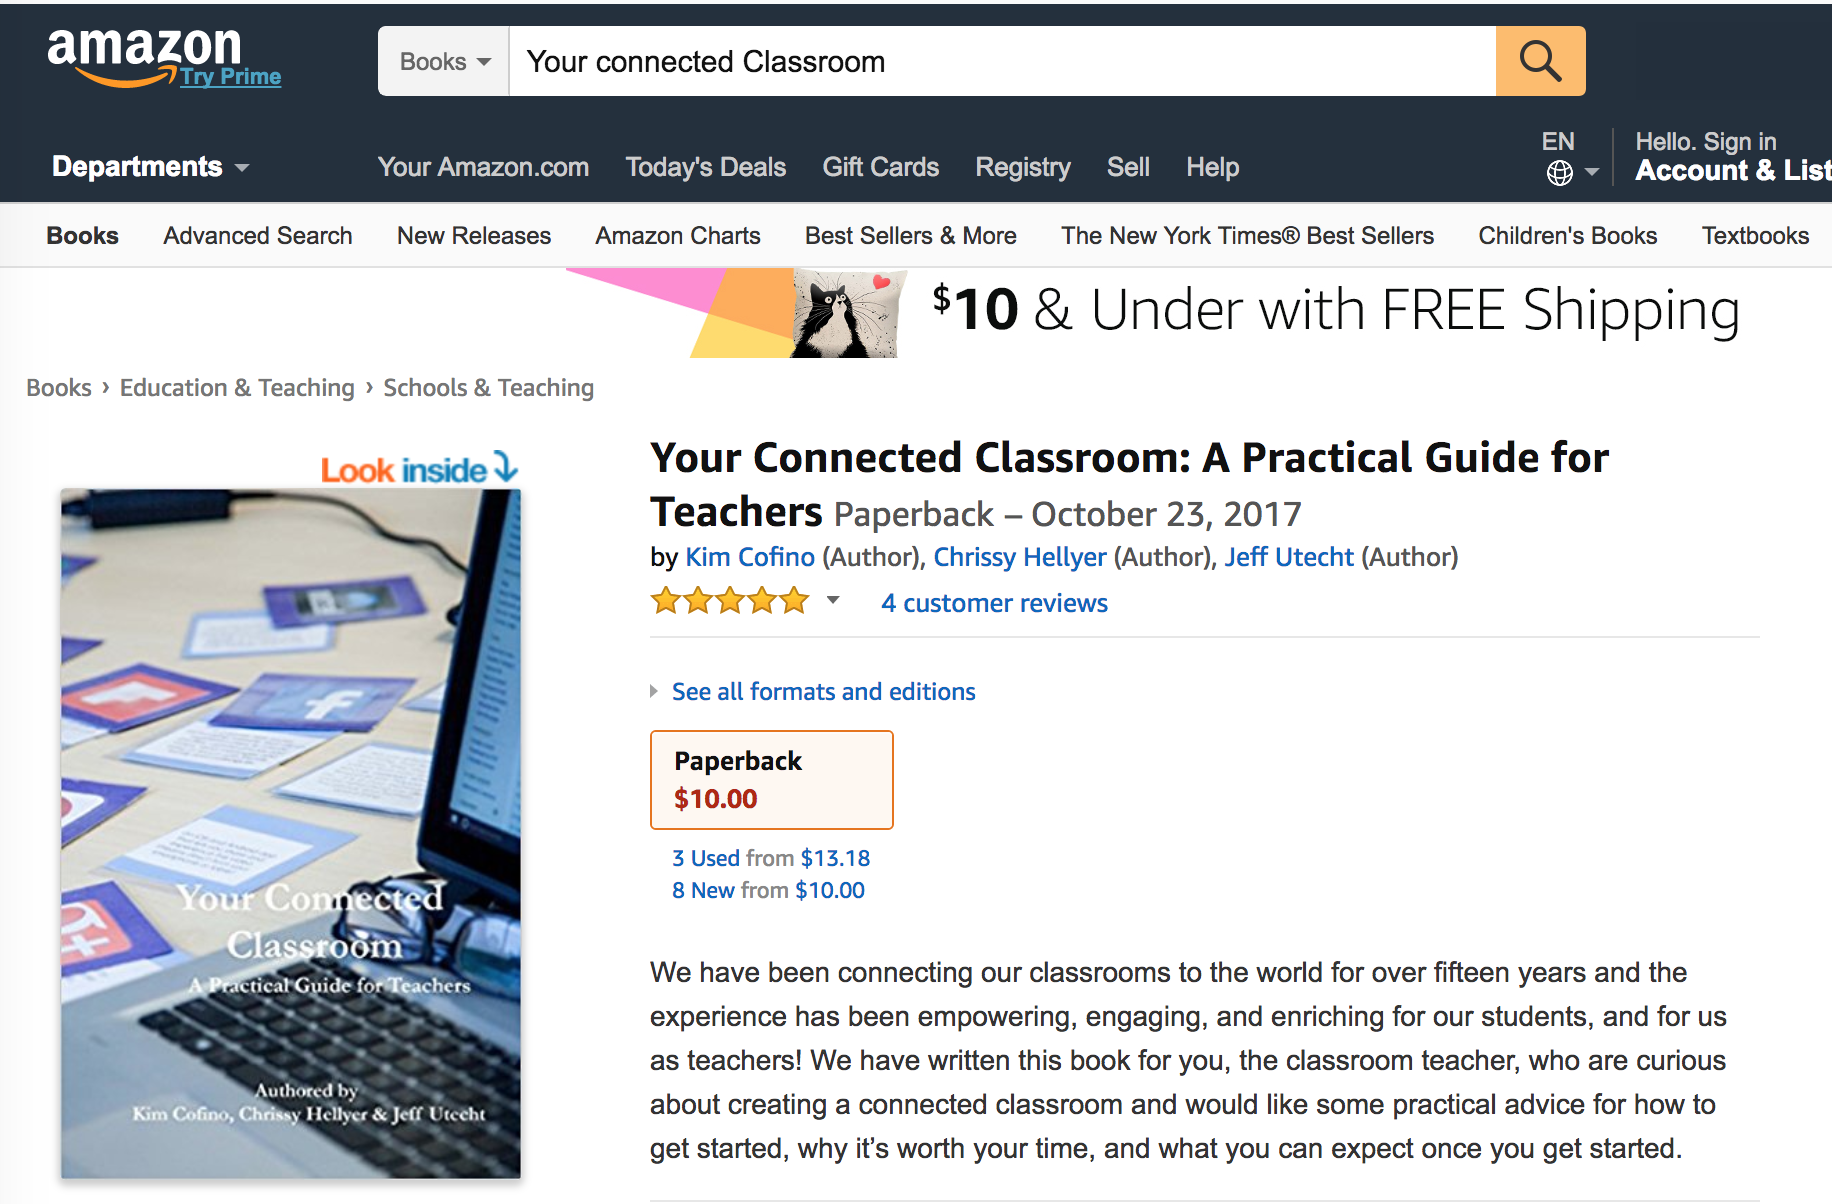 Your Connected Classroom